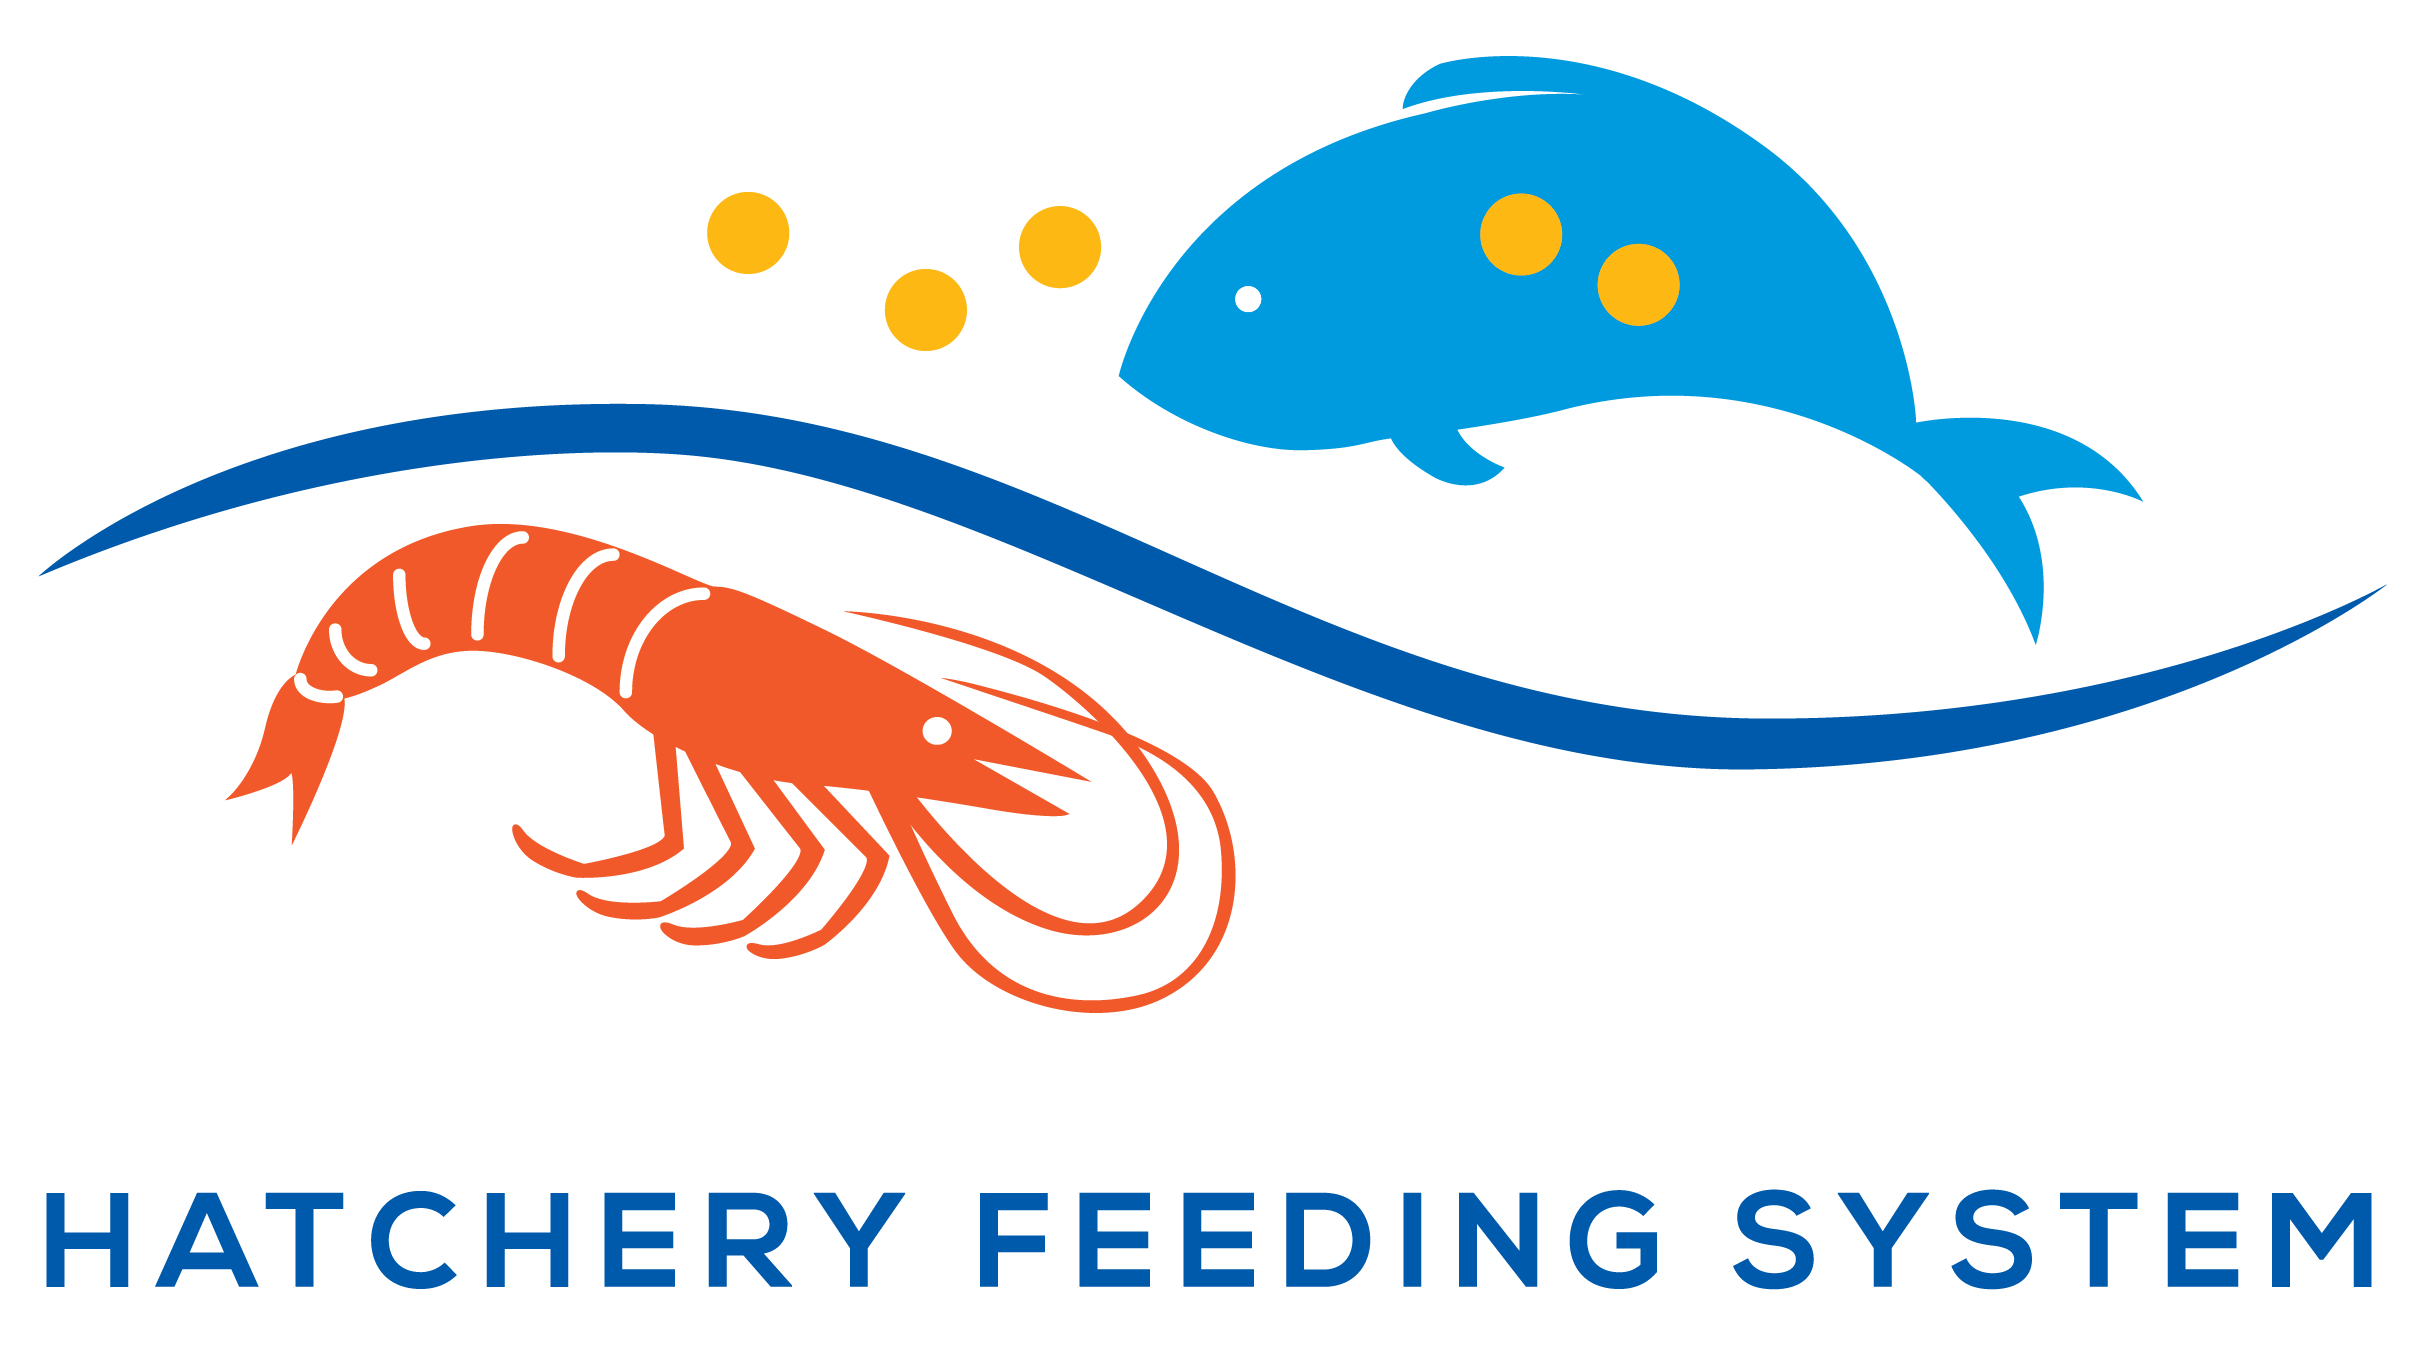 Hatchery Feeding Systems